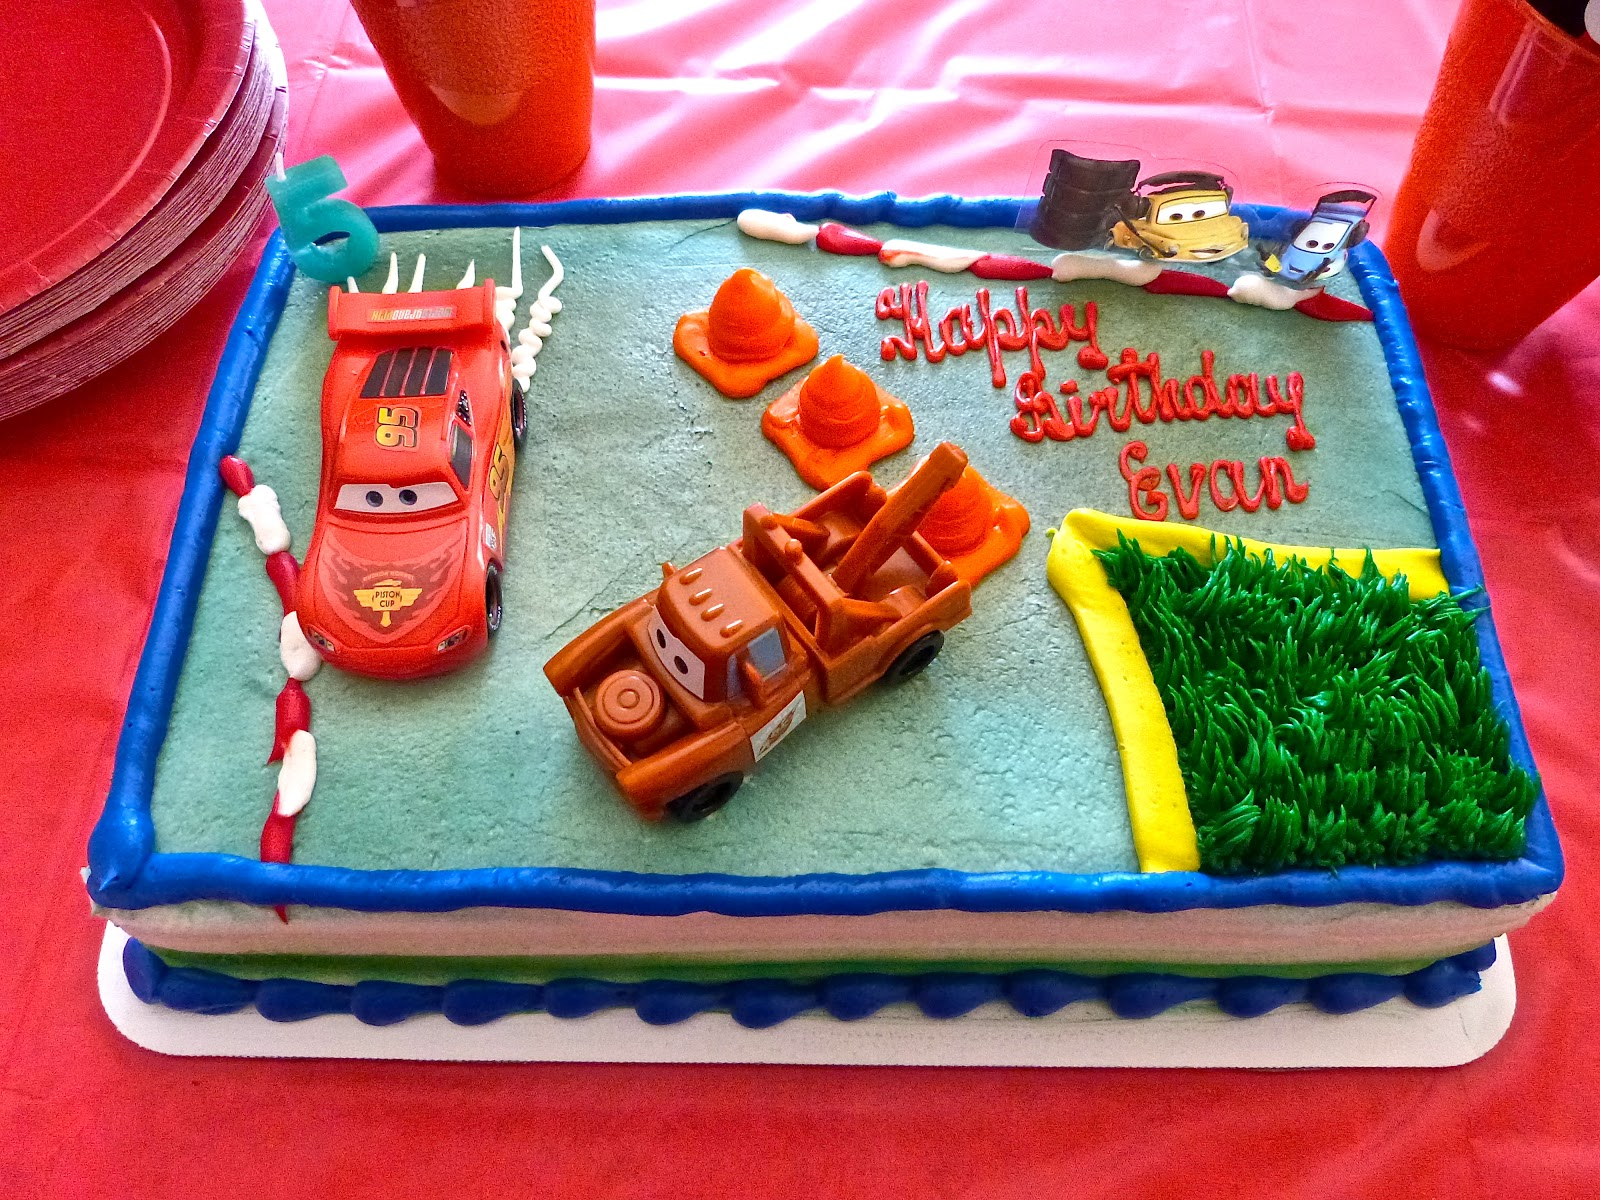 Lightning McQueen Cars Birthday Party KA CHOW & 81+ Food Ideas For Lightning Mcqueen Birthday Party - Party Food ...